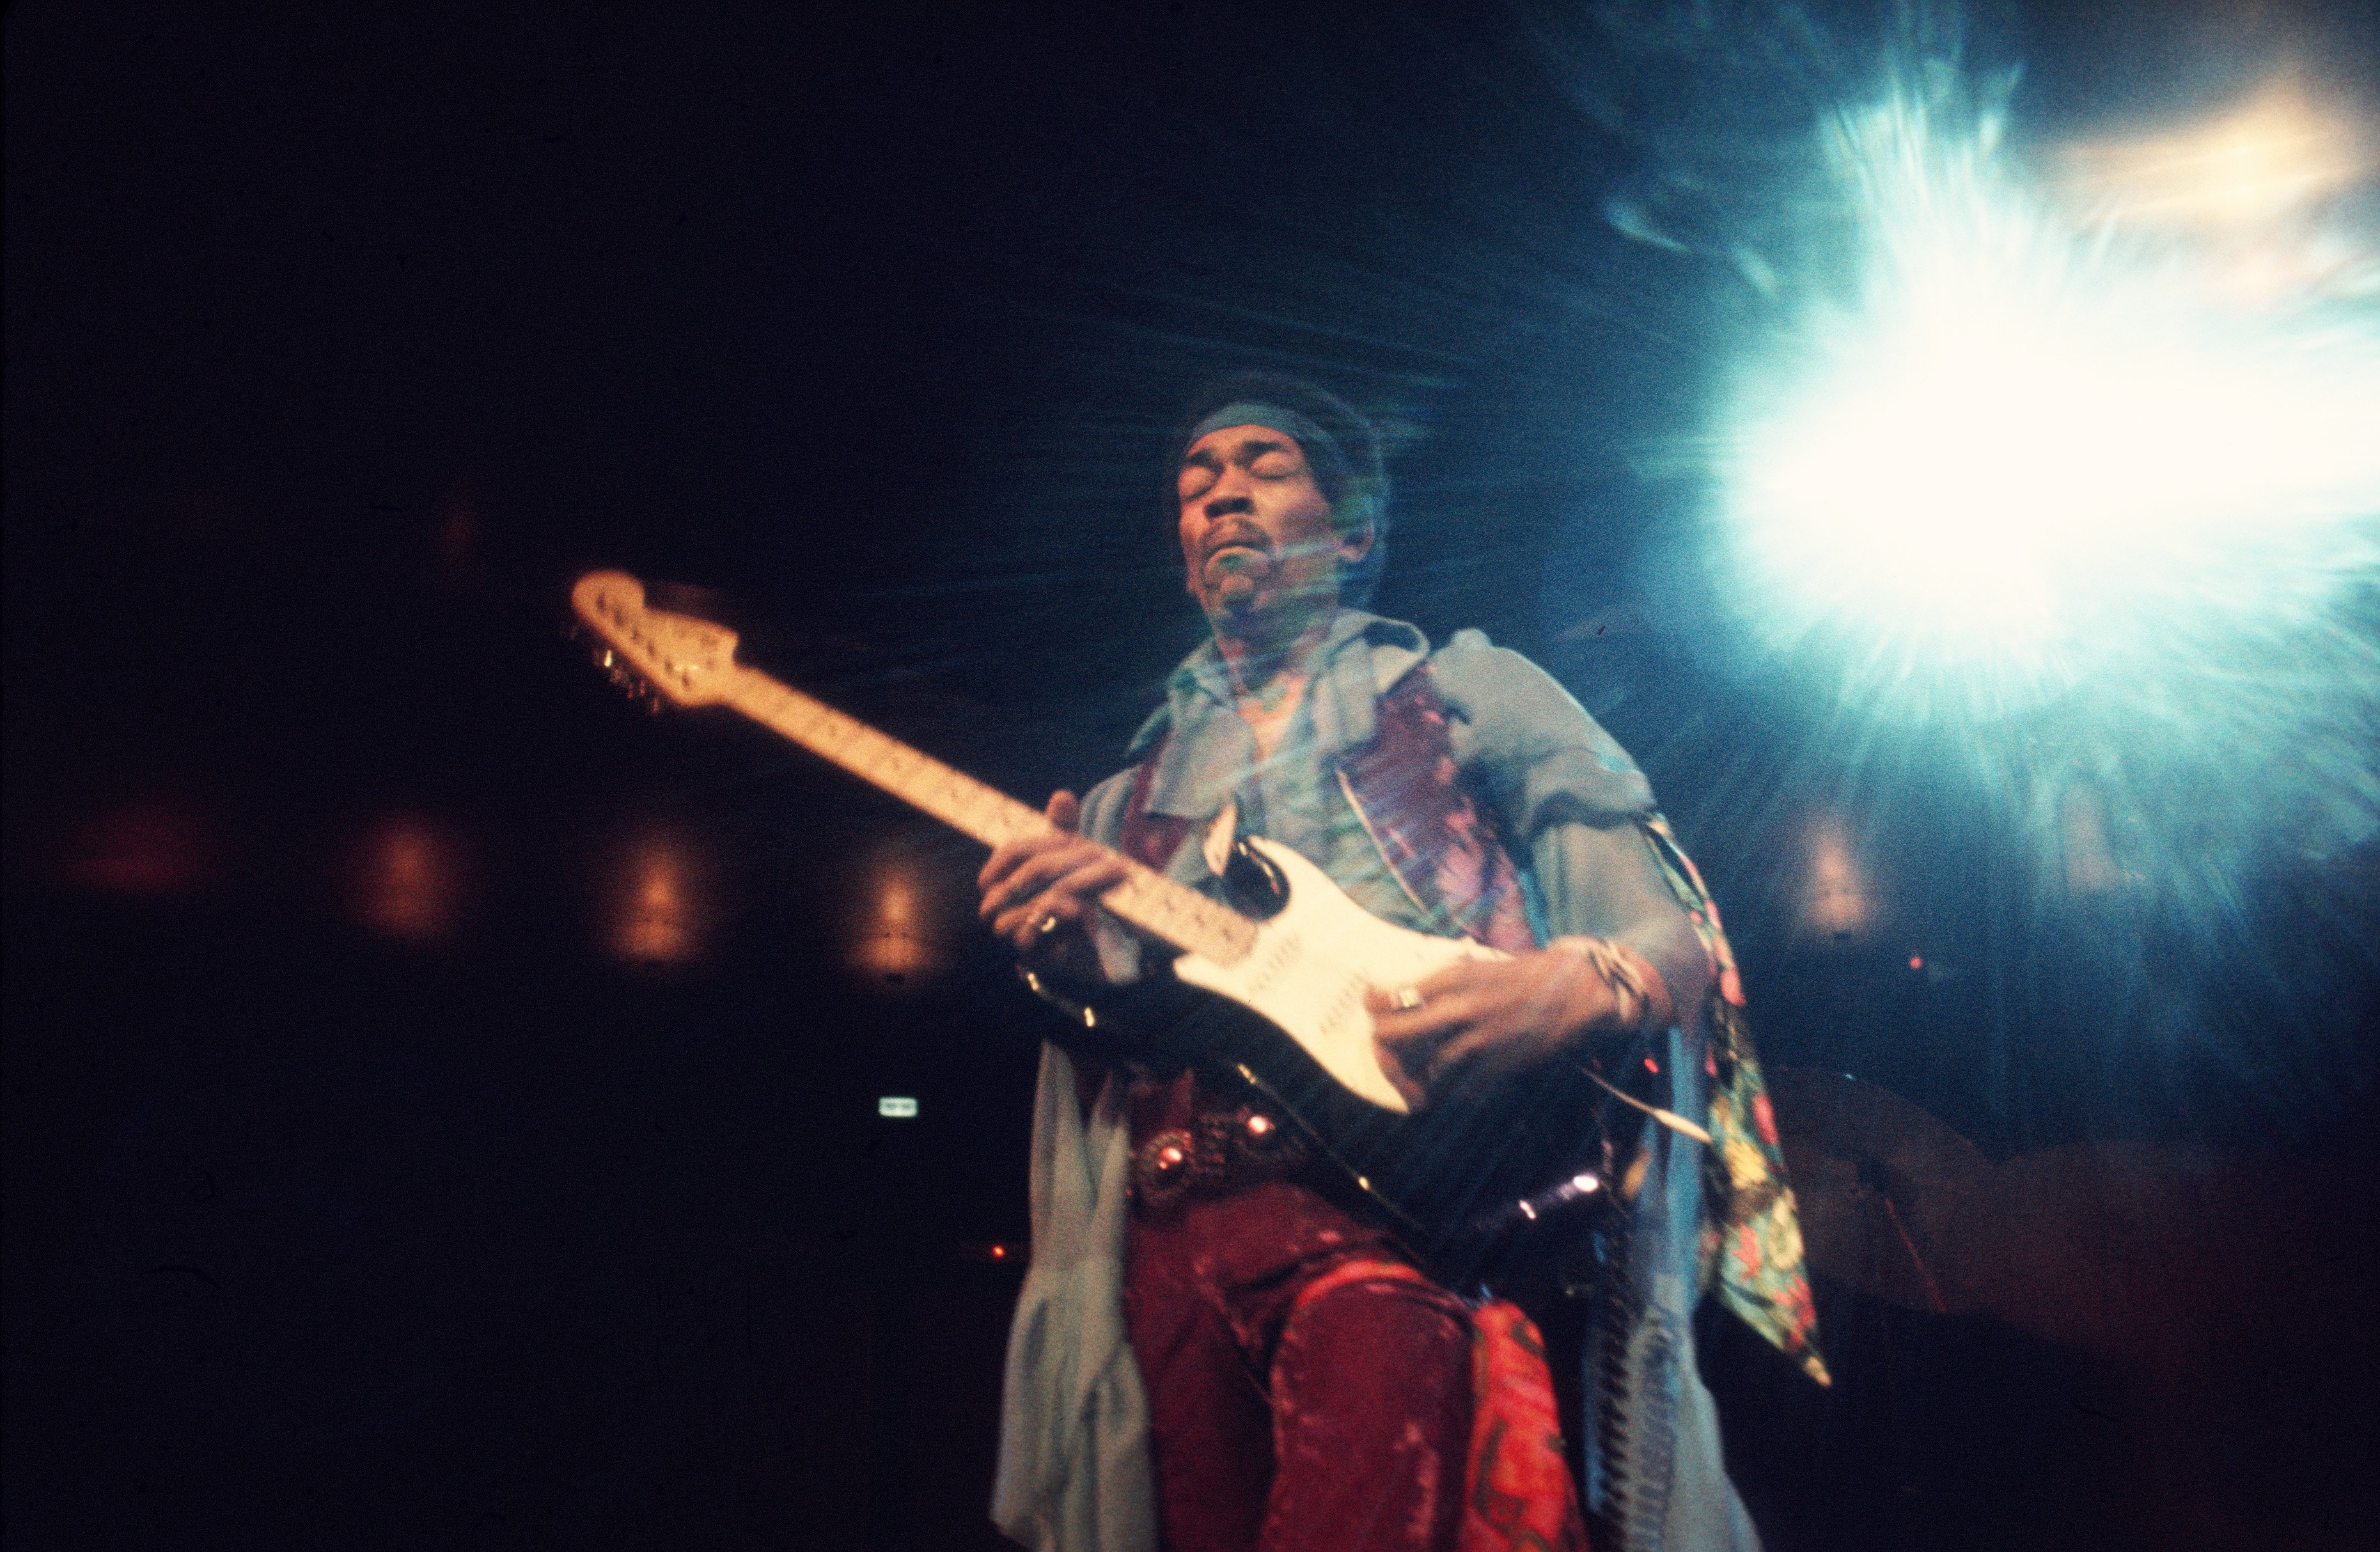 Jimi Hendrix and the Band of Gypsies at the Fillmore East: A Concert That Changed Rock